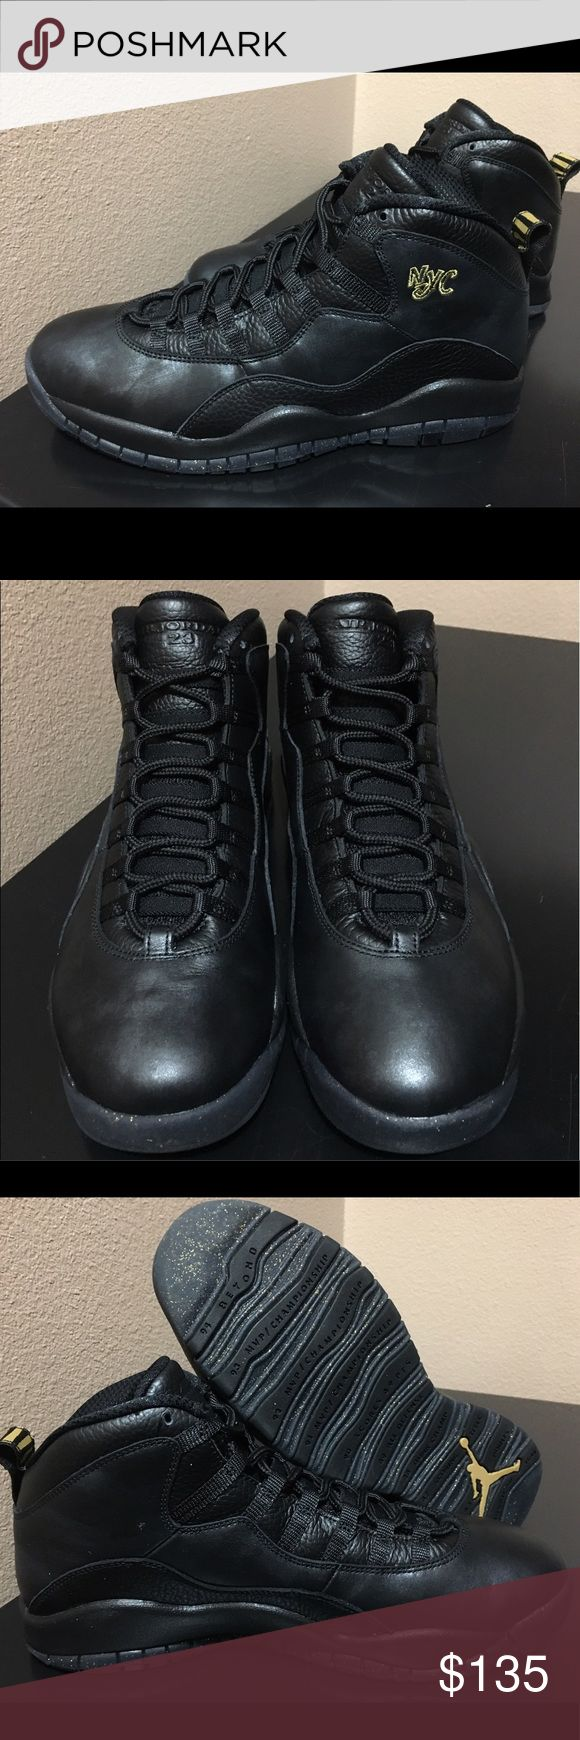 """Air Jordan 10 """"NYC"""" Brand new/Never Worn. Great add to any collection. Very high quality and nice details all around. Jordan Shoes Sneakers"""